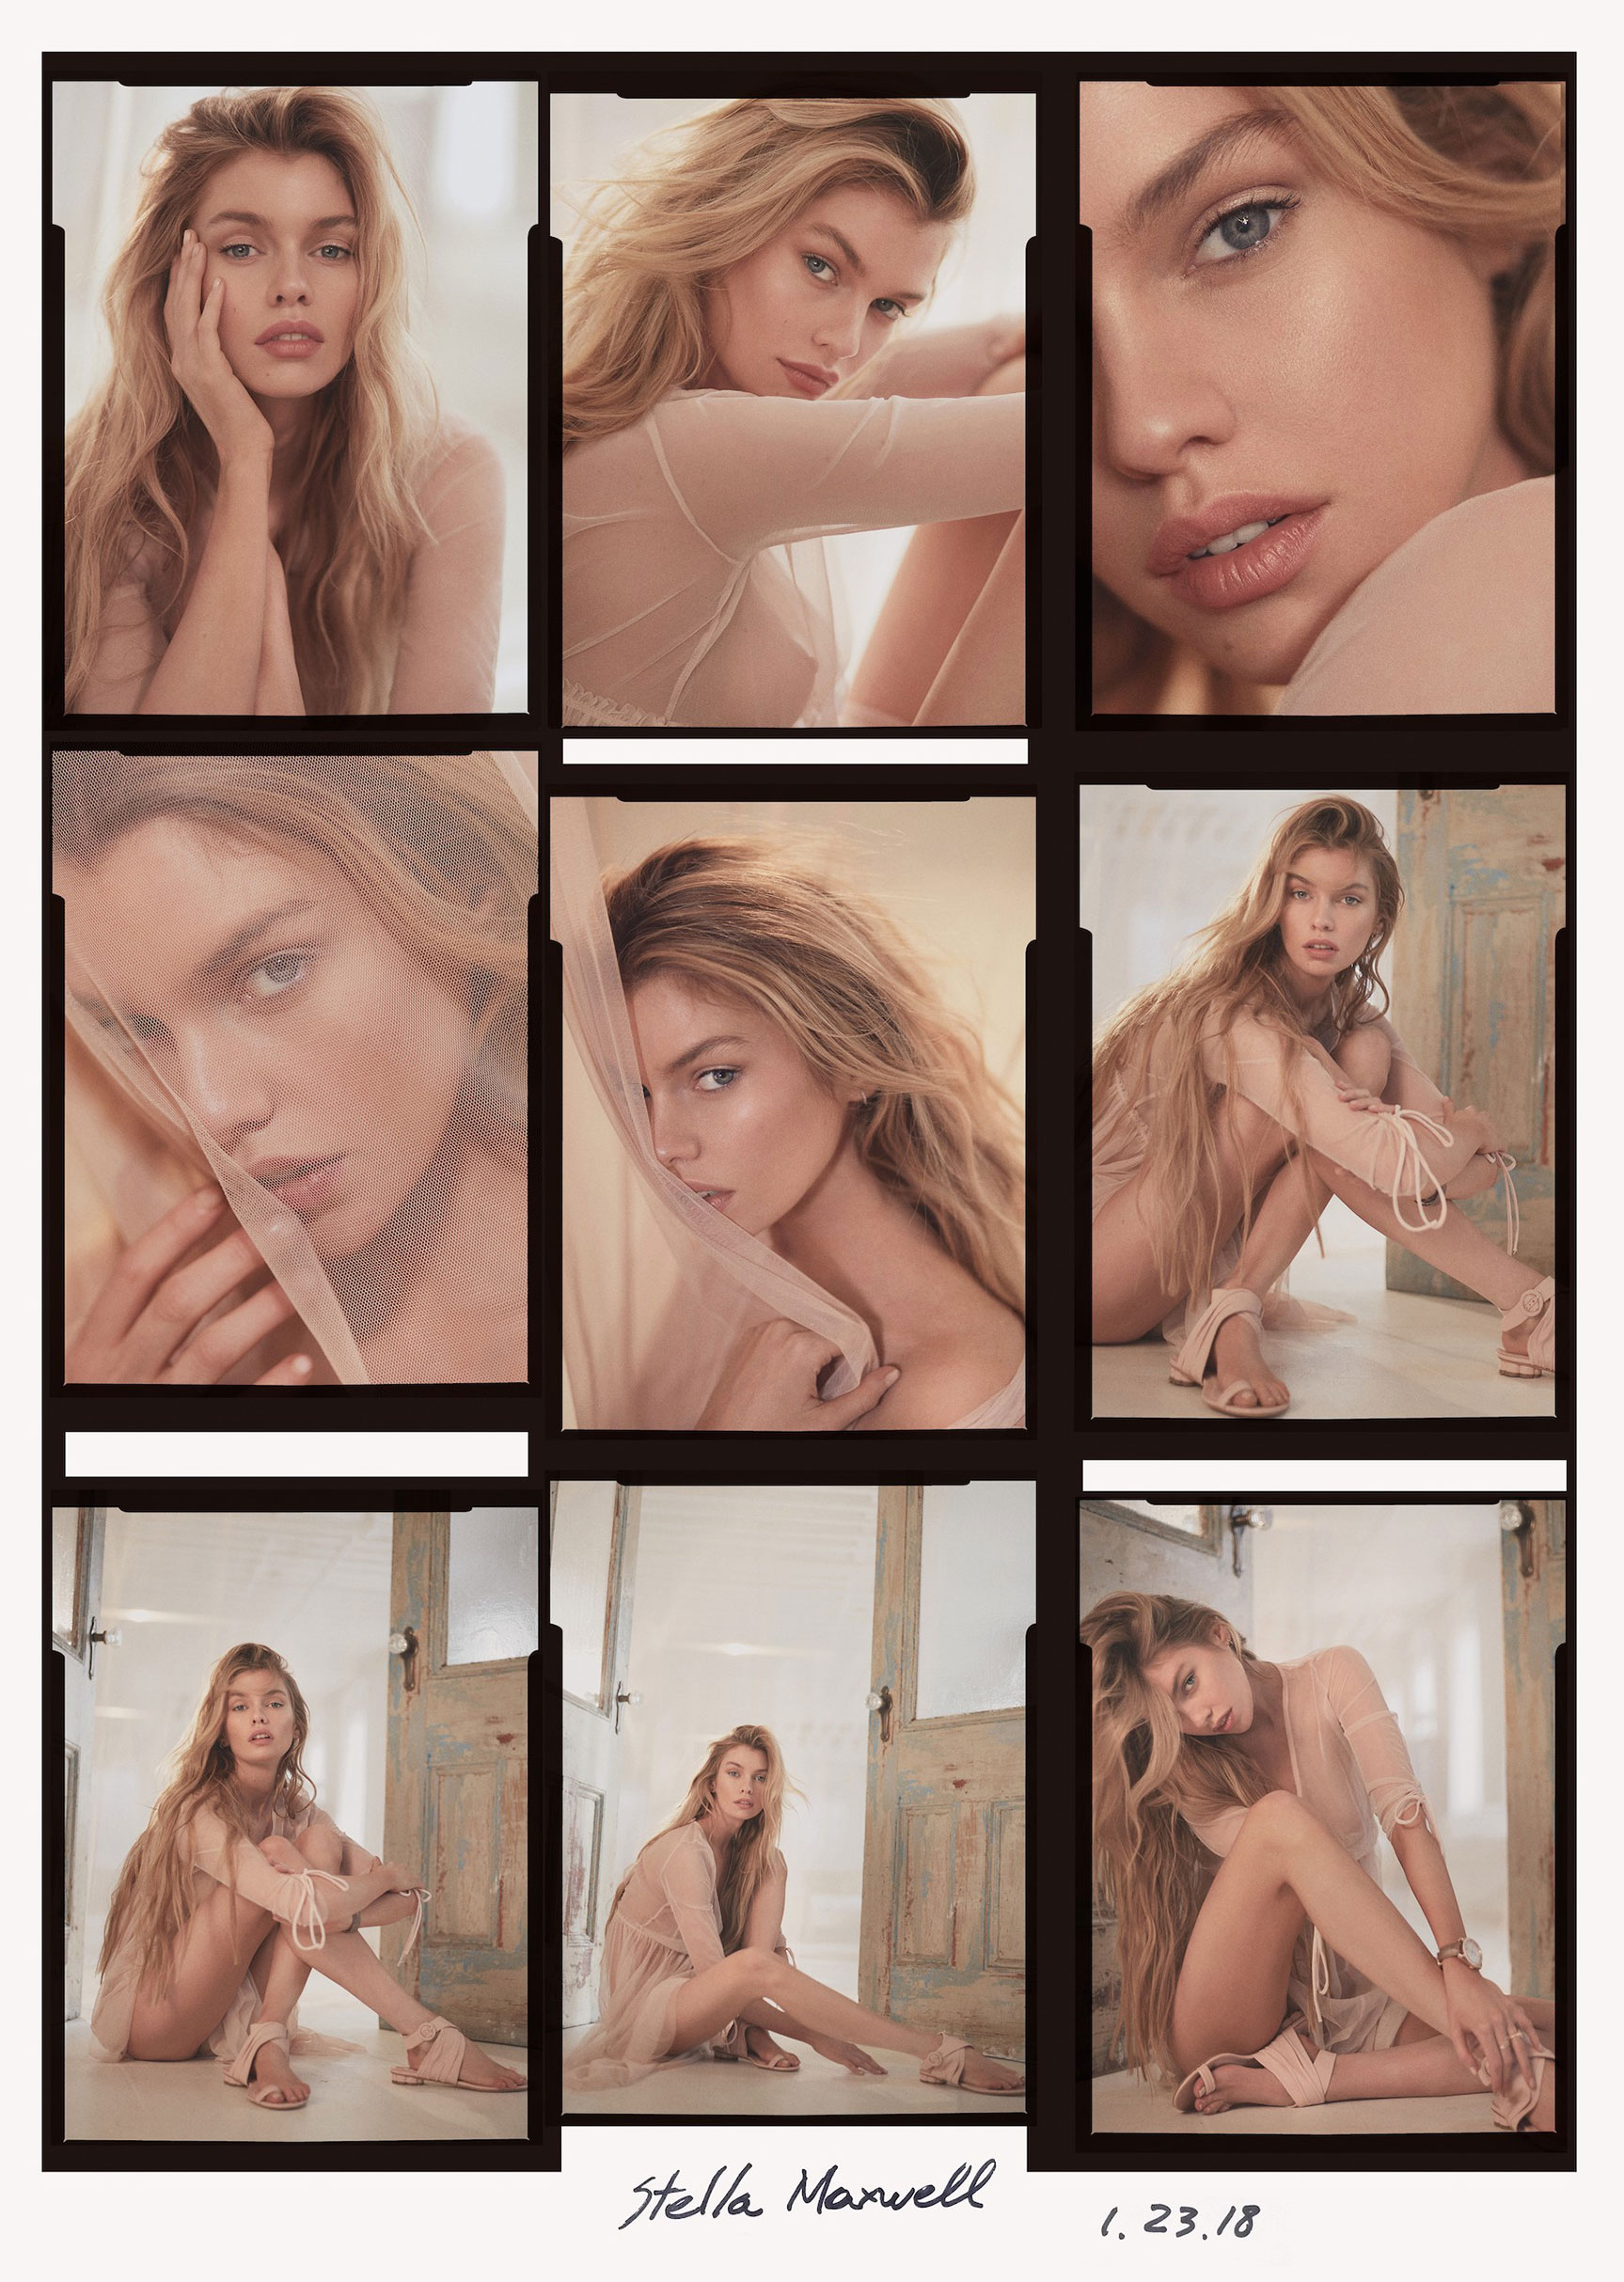 Stella Maxwell by Greg Swales - Issue Magazine april 2018